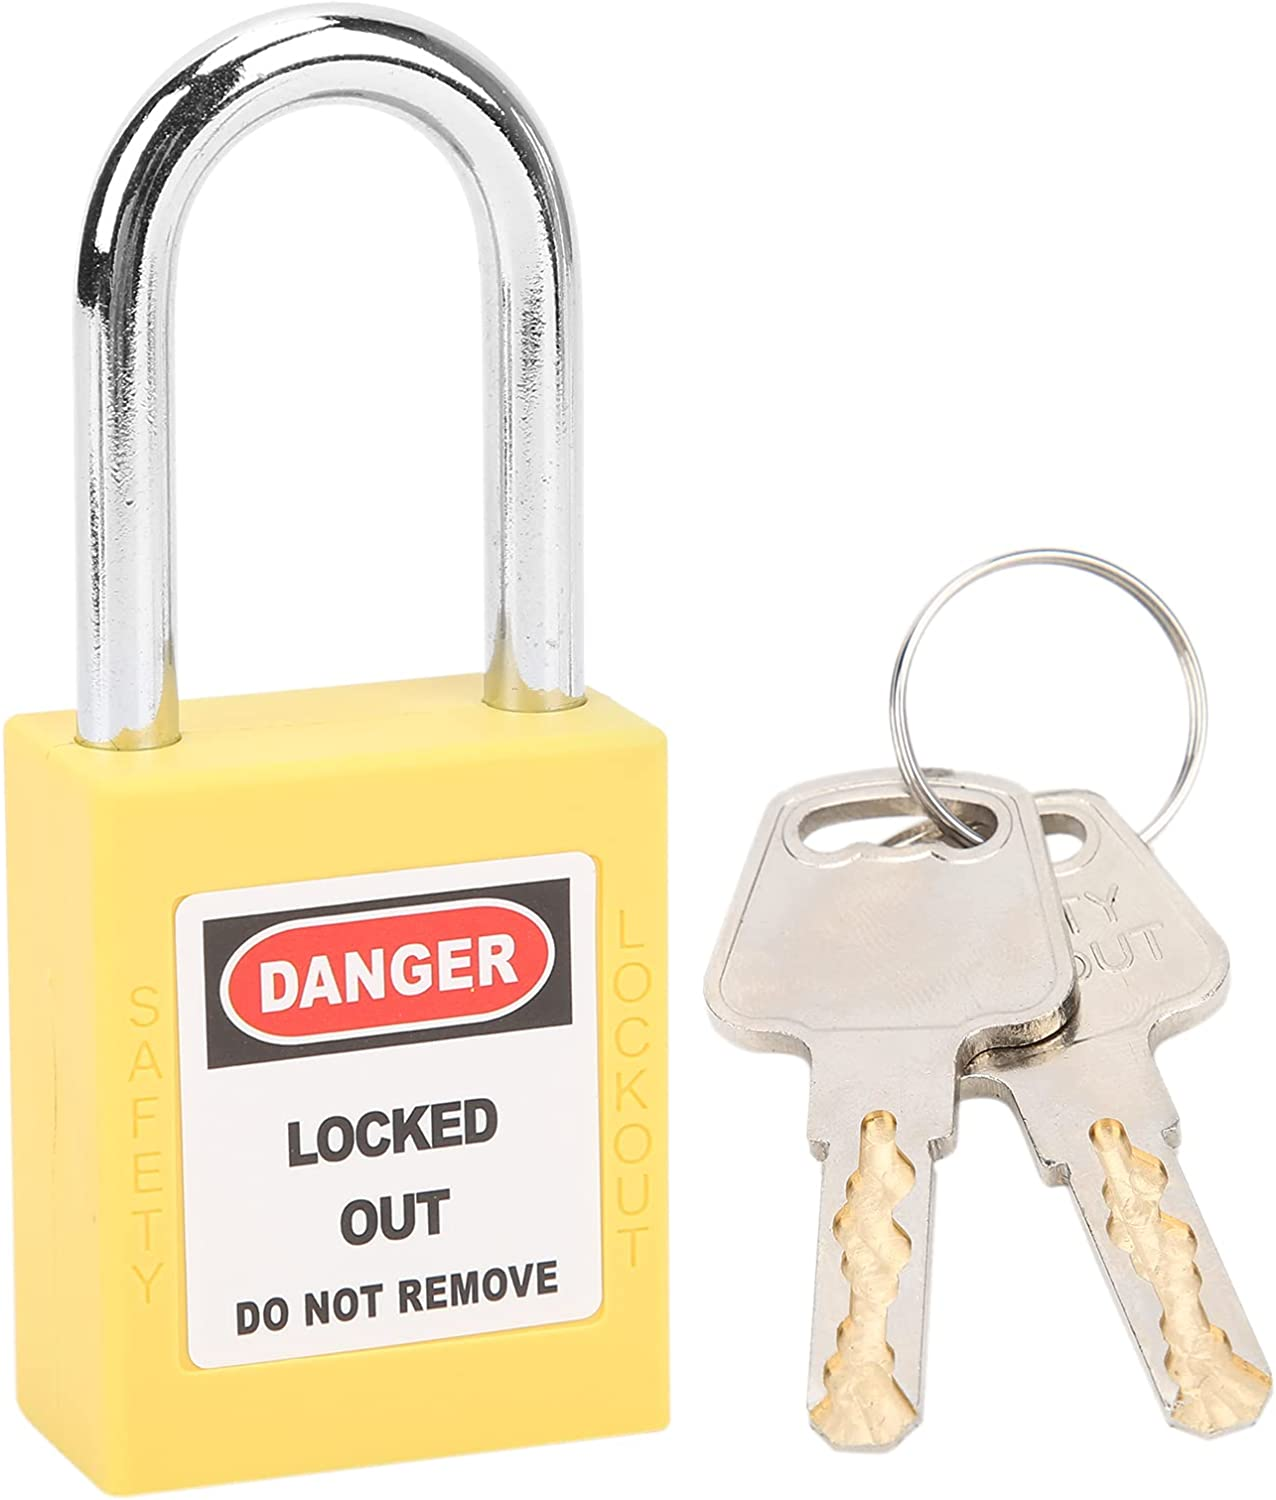 National uniform free shipping Lockout Tagout Lock Albuquerque Mall 38mm Enginee Safety Insulation